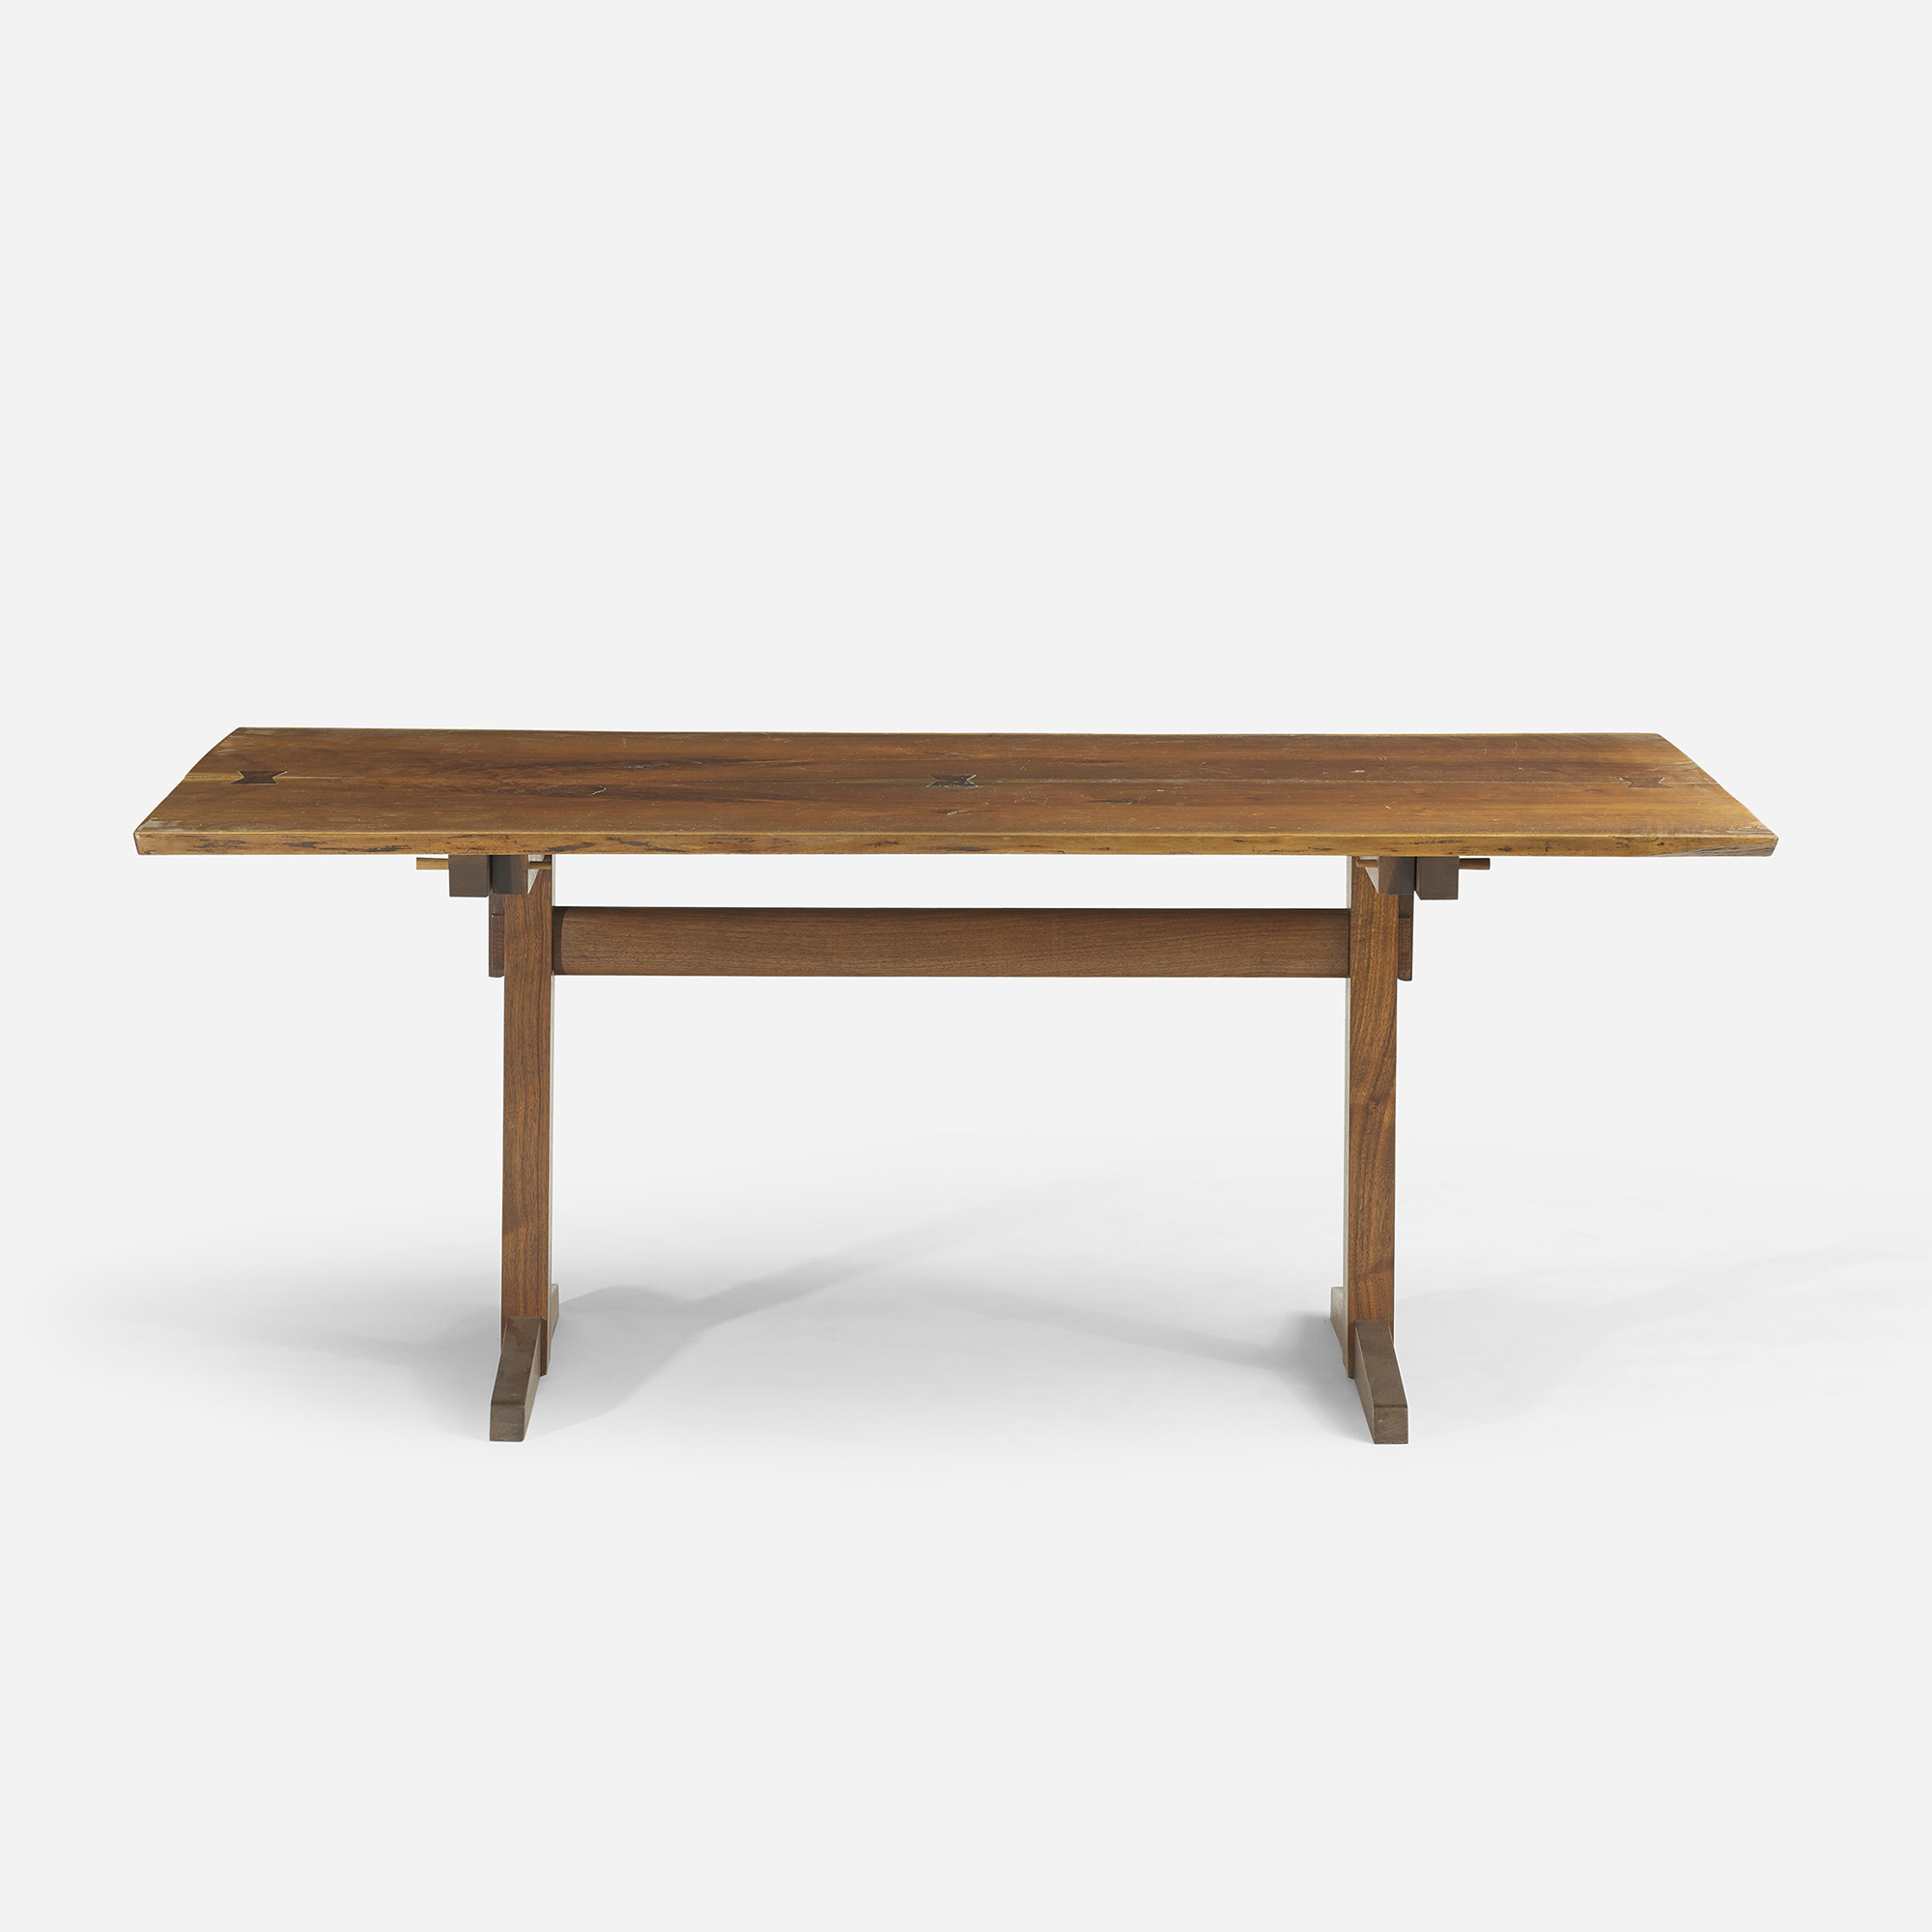 Nakashima Table 156: george nakashima / trestle dining table < design, 12 june